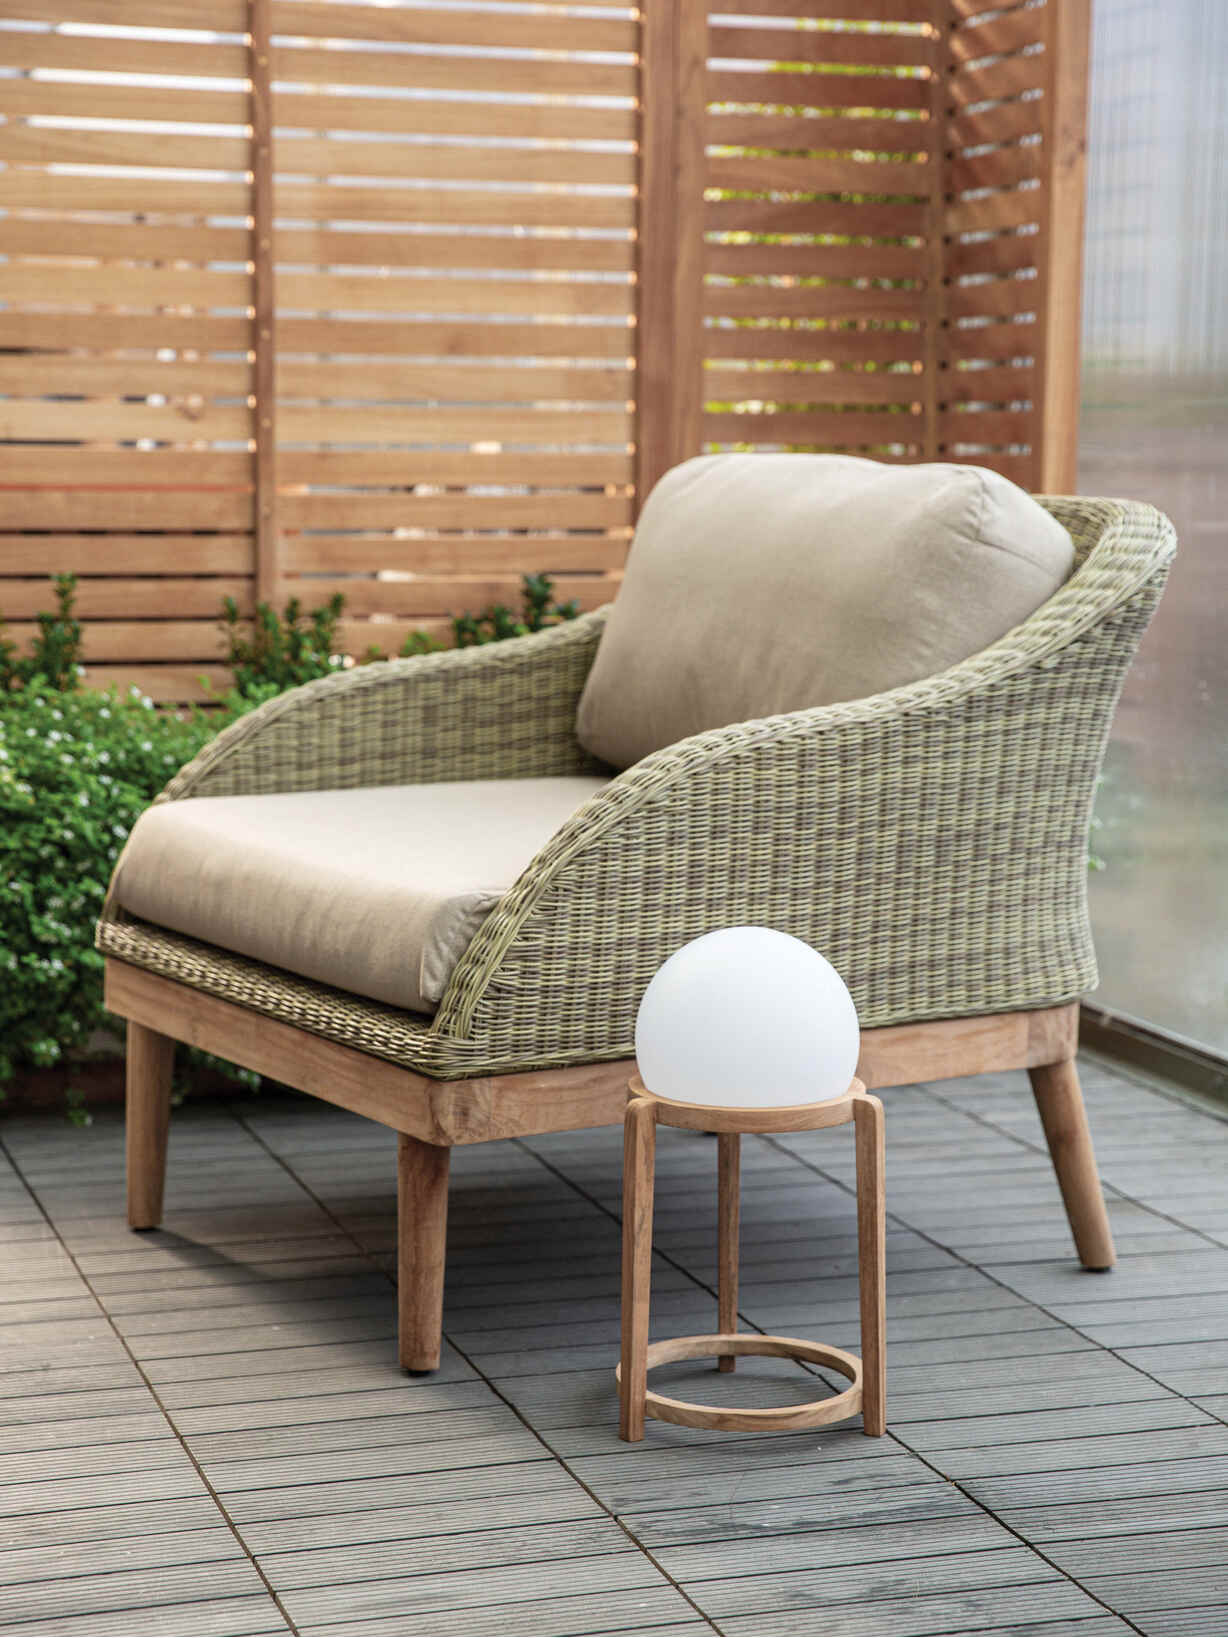 Nordic House Sigrid Outdoor Furniture - Natural Taupe